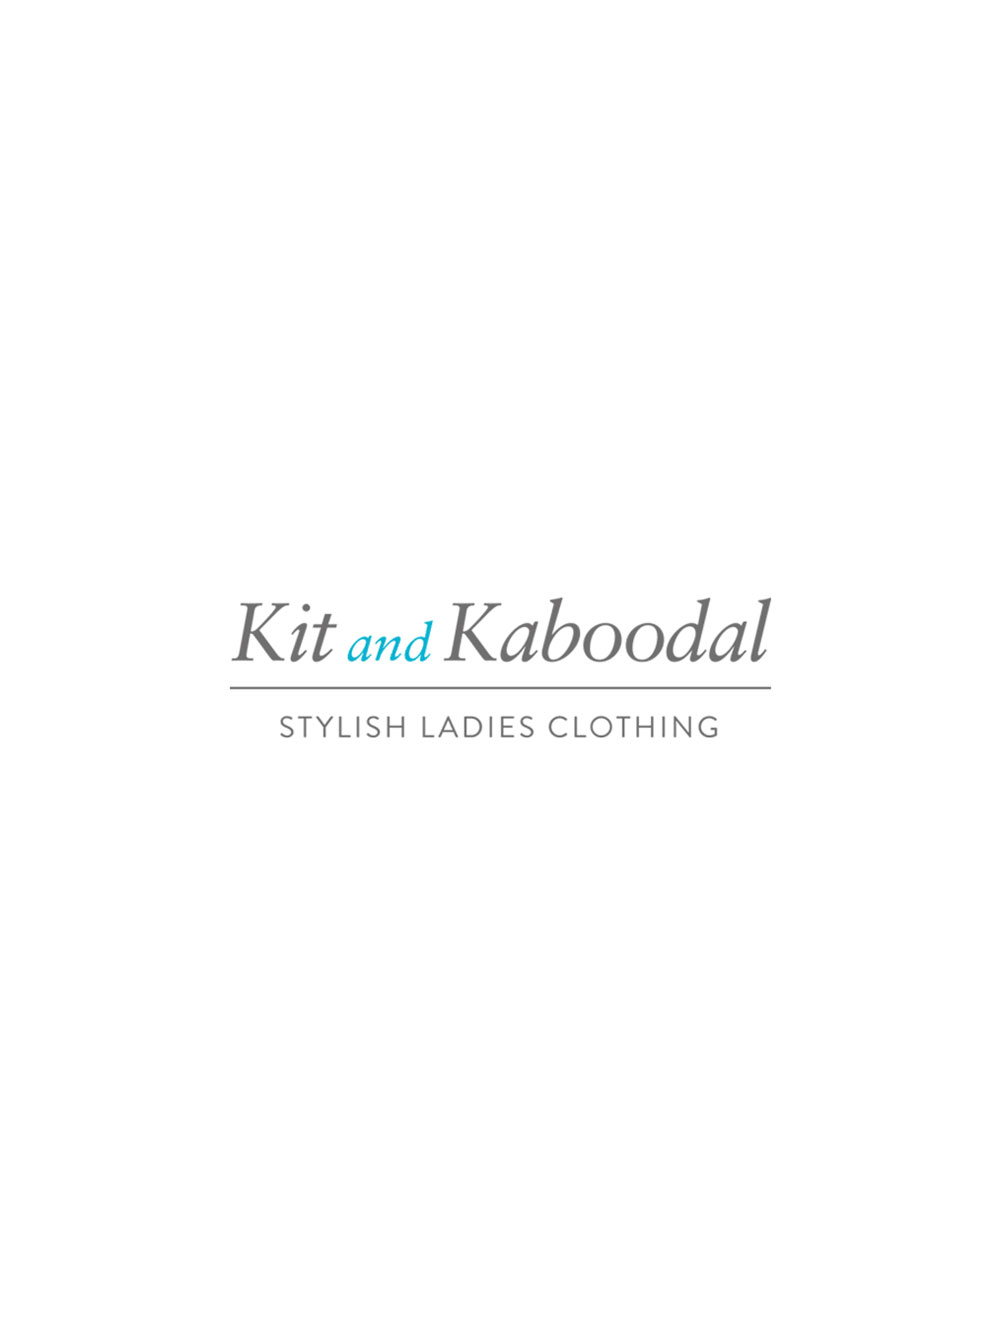 Kit and Kaboodal Star Cuff Black